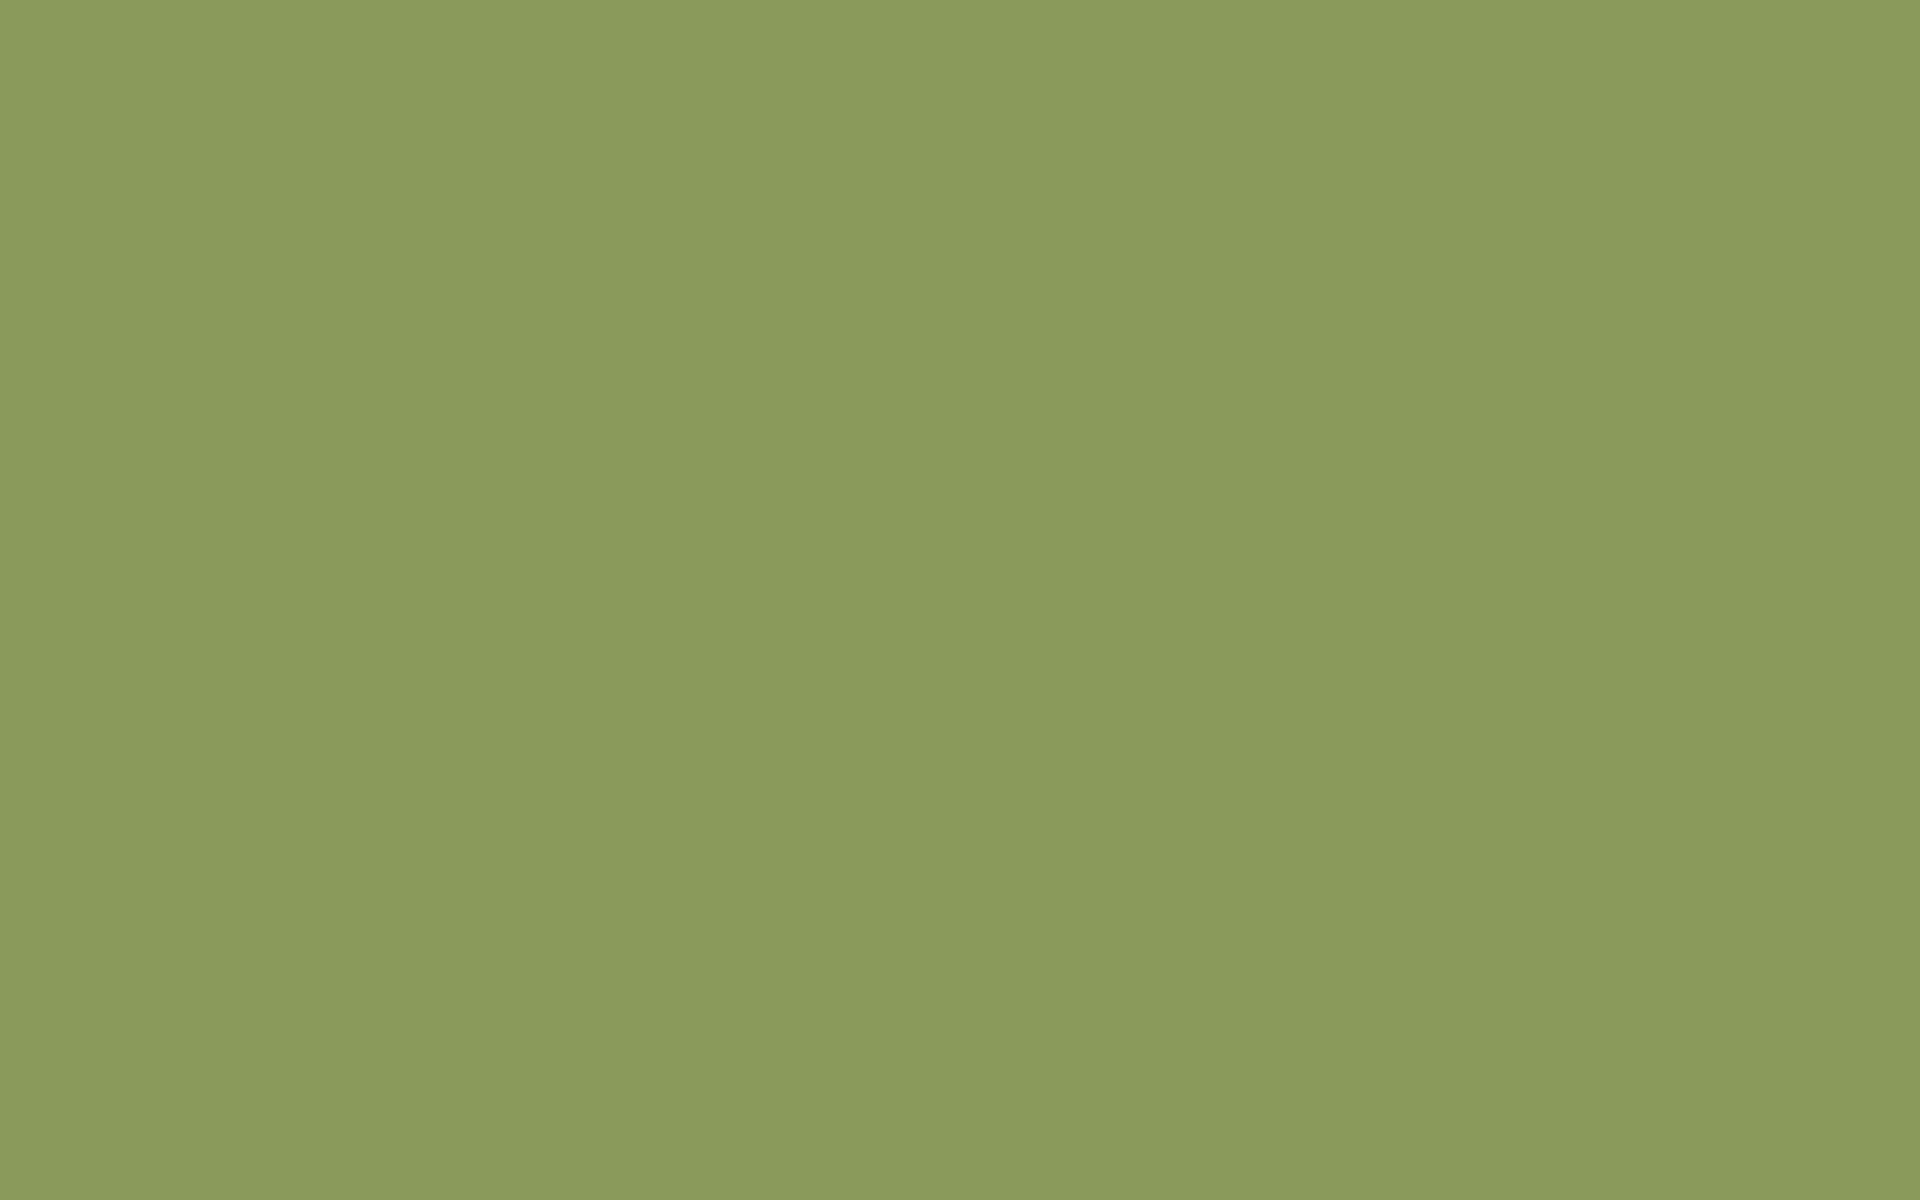 1920x1200 Moss Green Solid Color Background